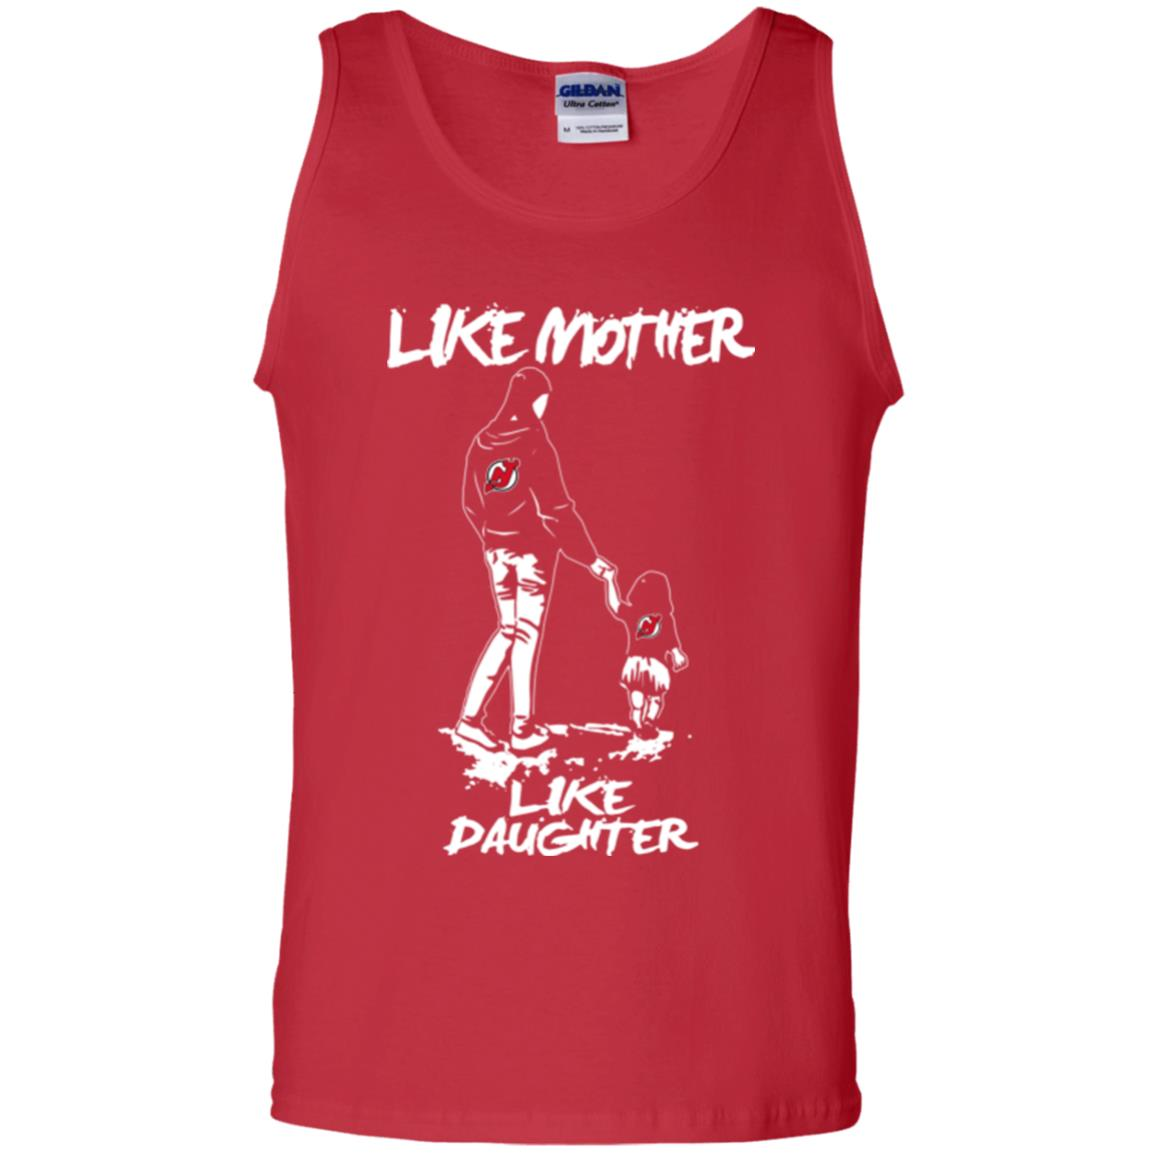 Like Mother Like Daughter New Jersey Devils T Shirts